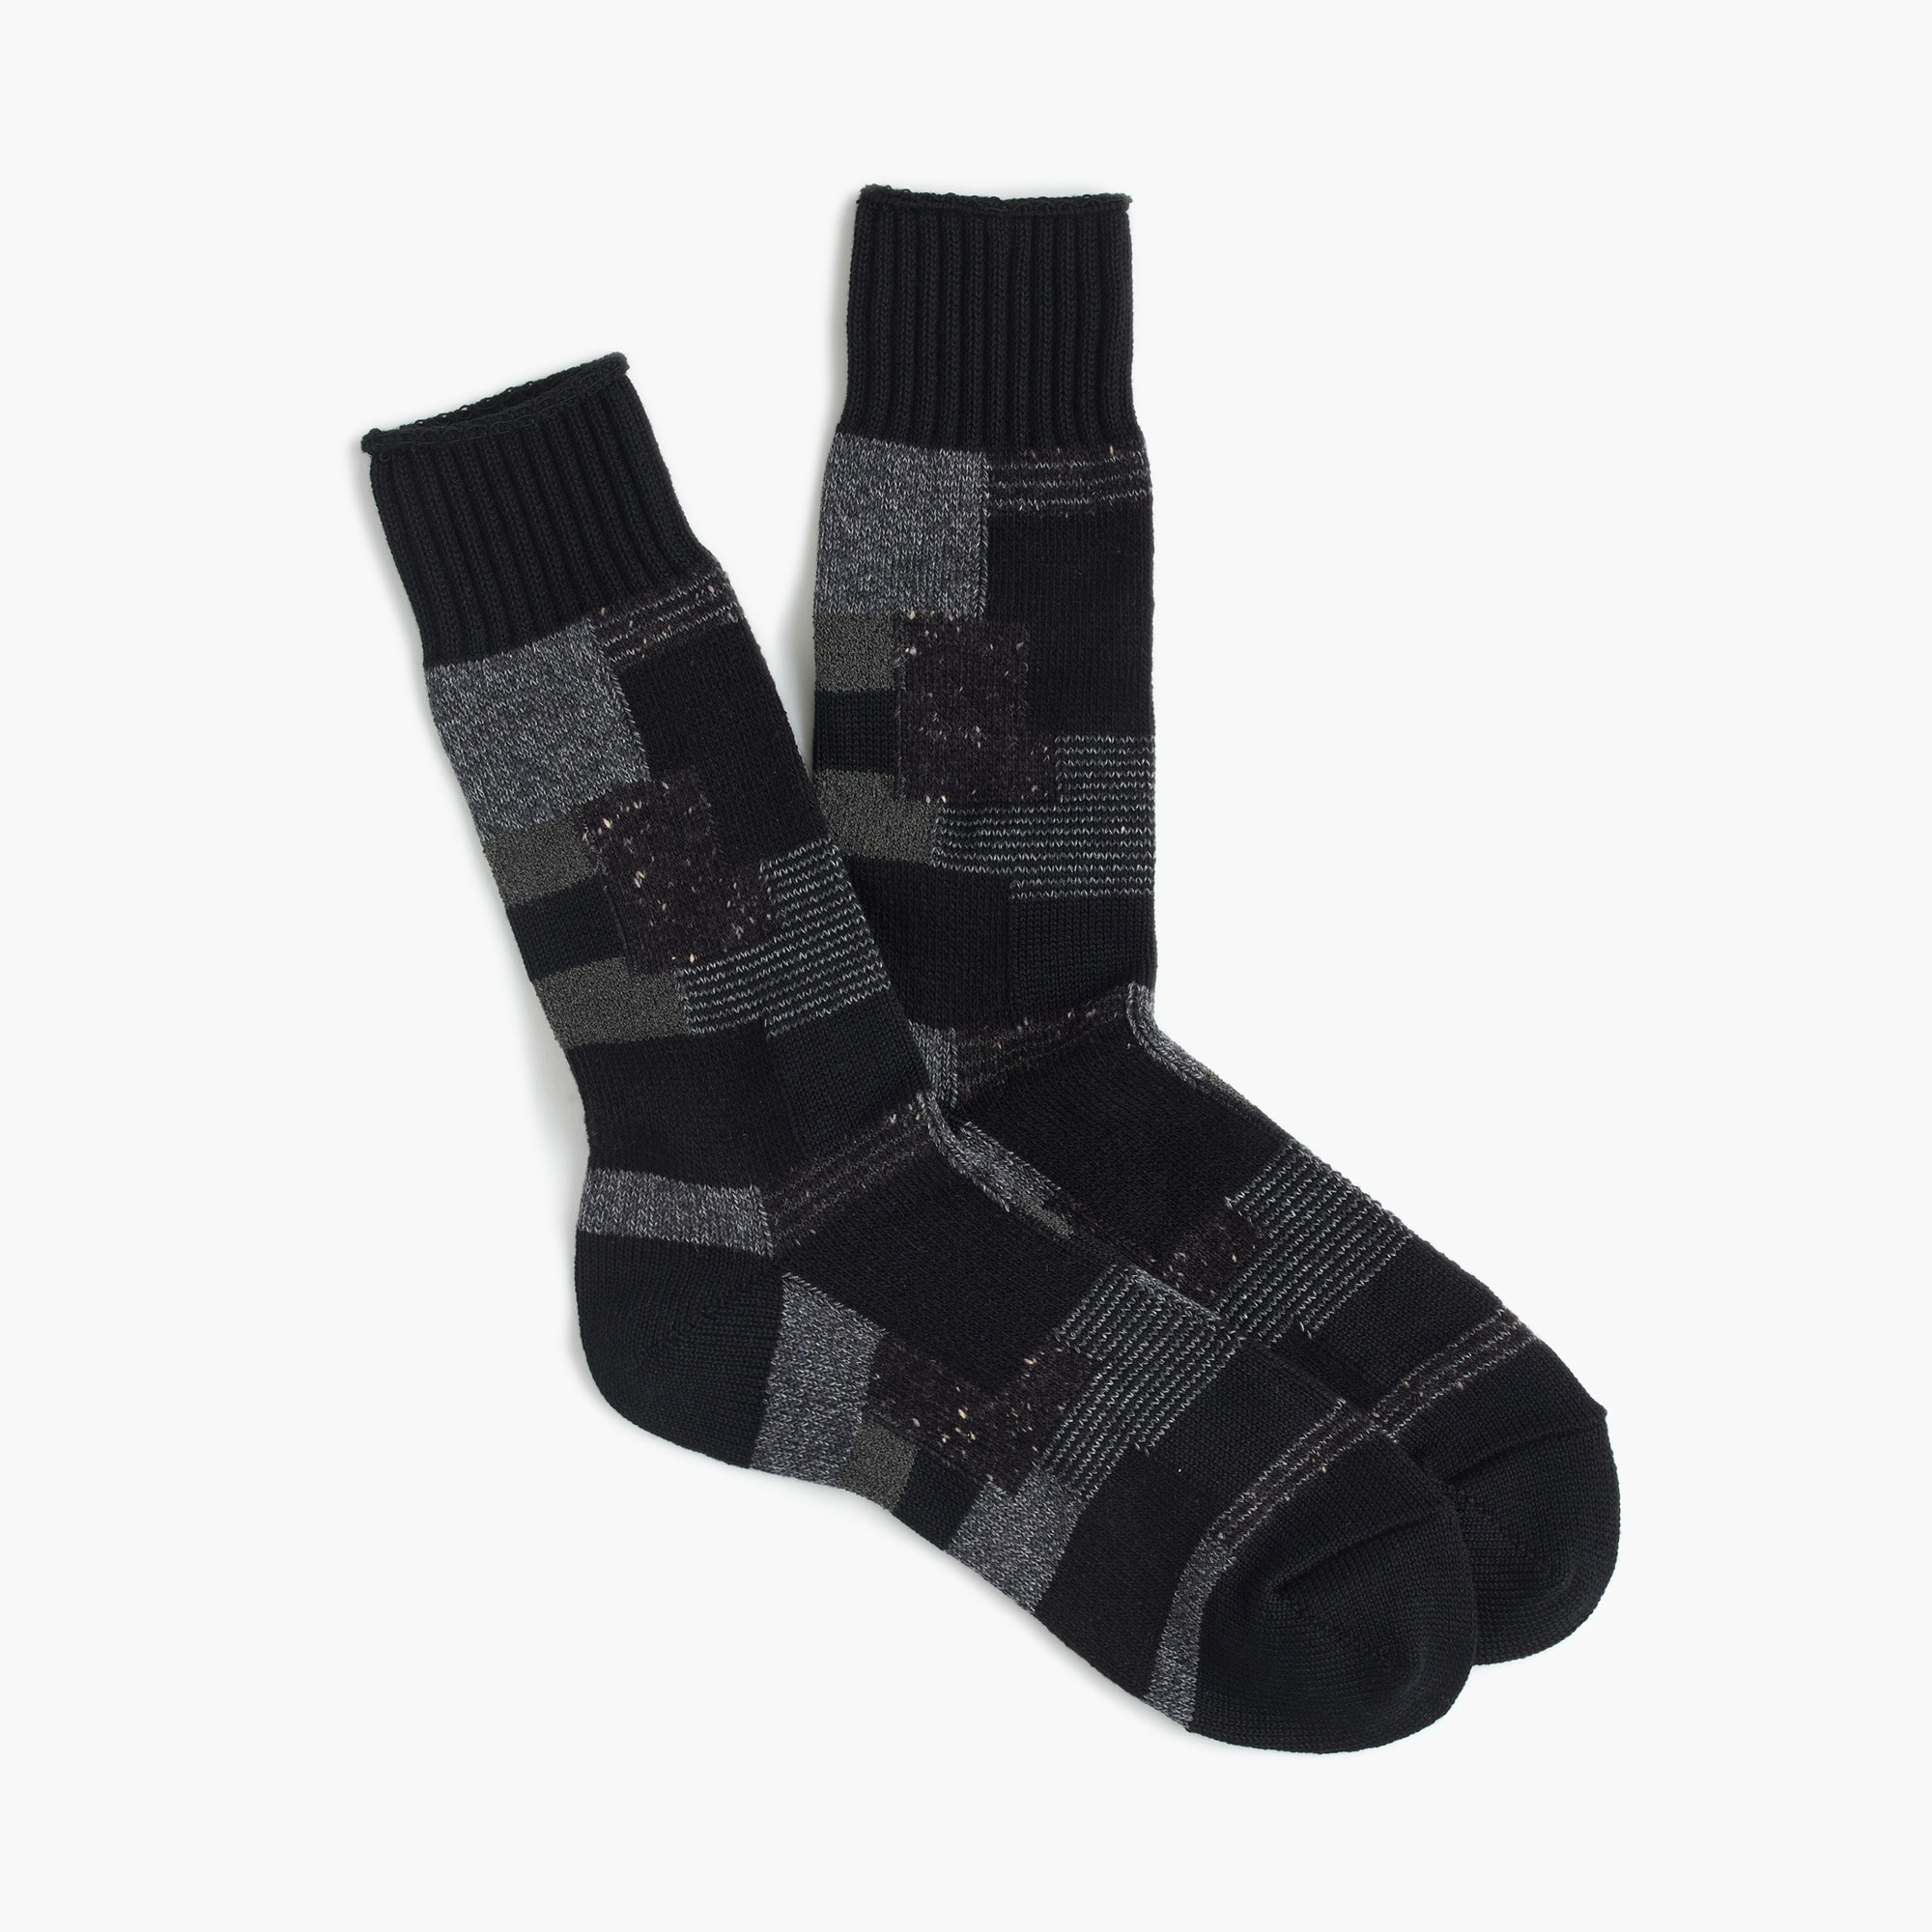 Anonymous Ism™ patchwork socks men socks c